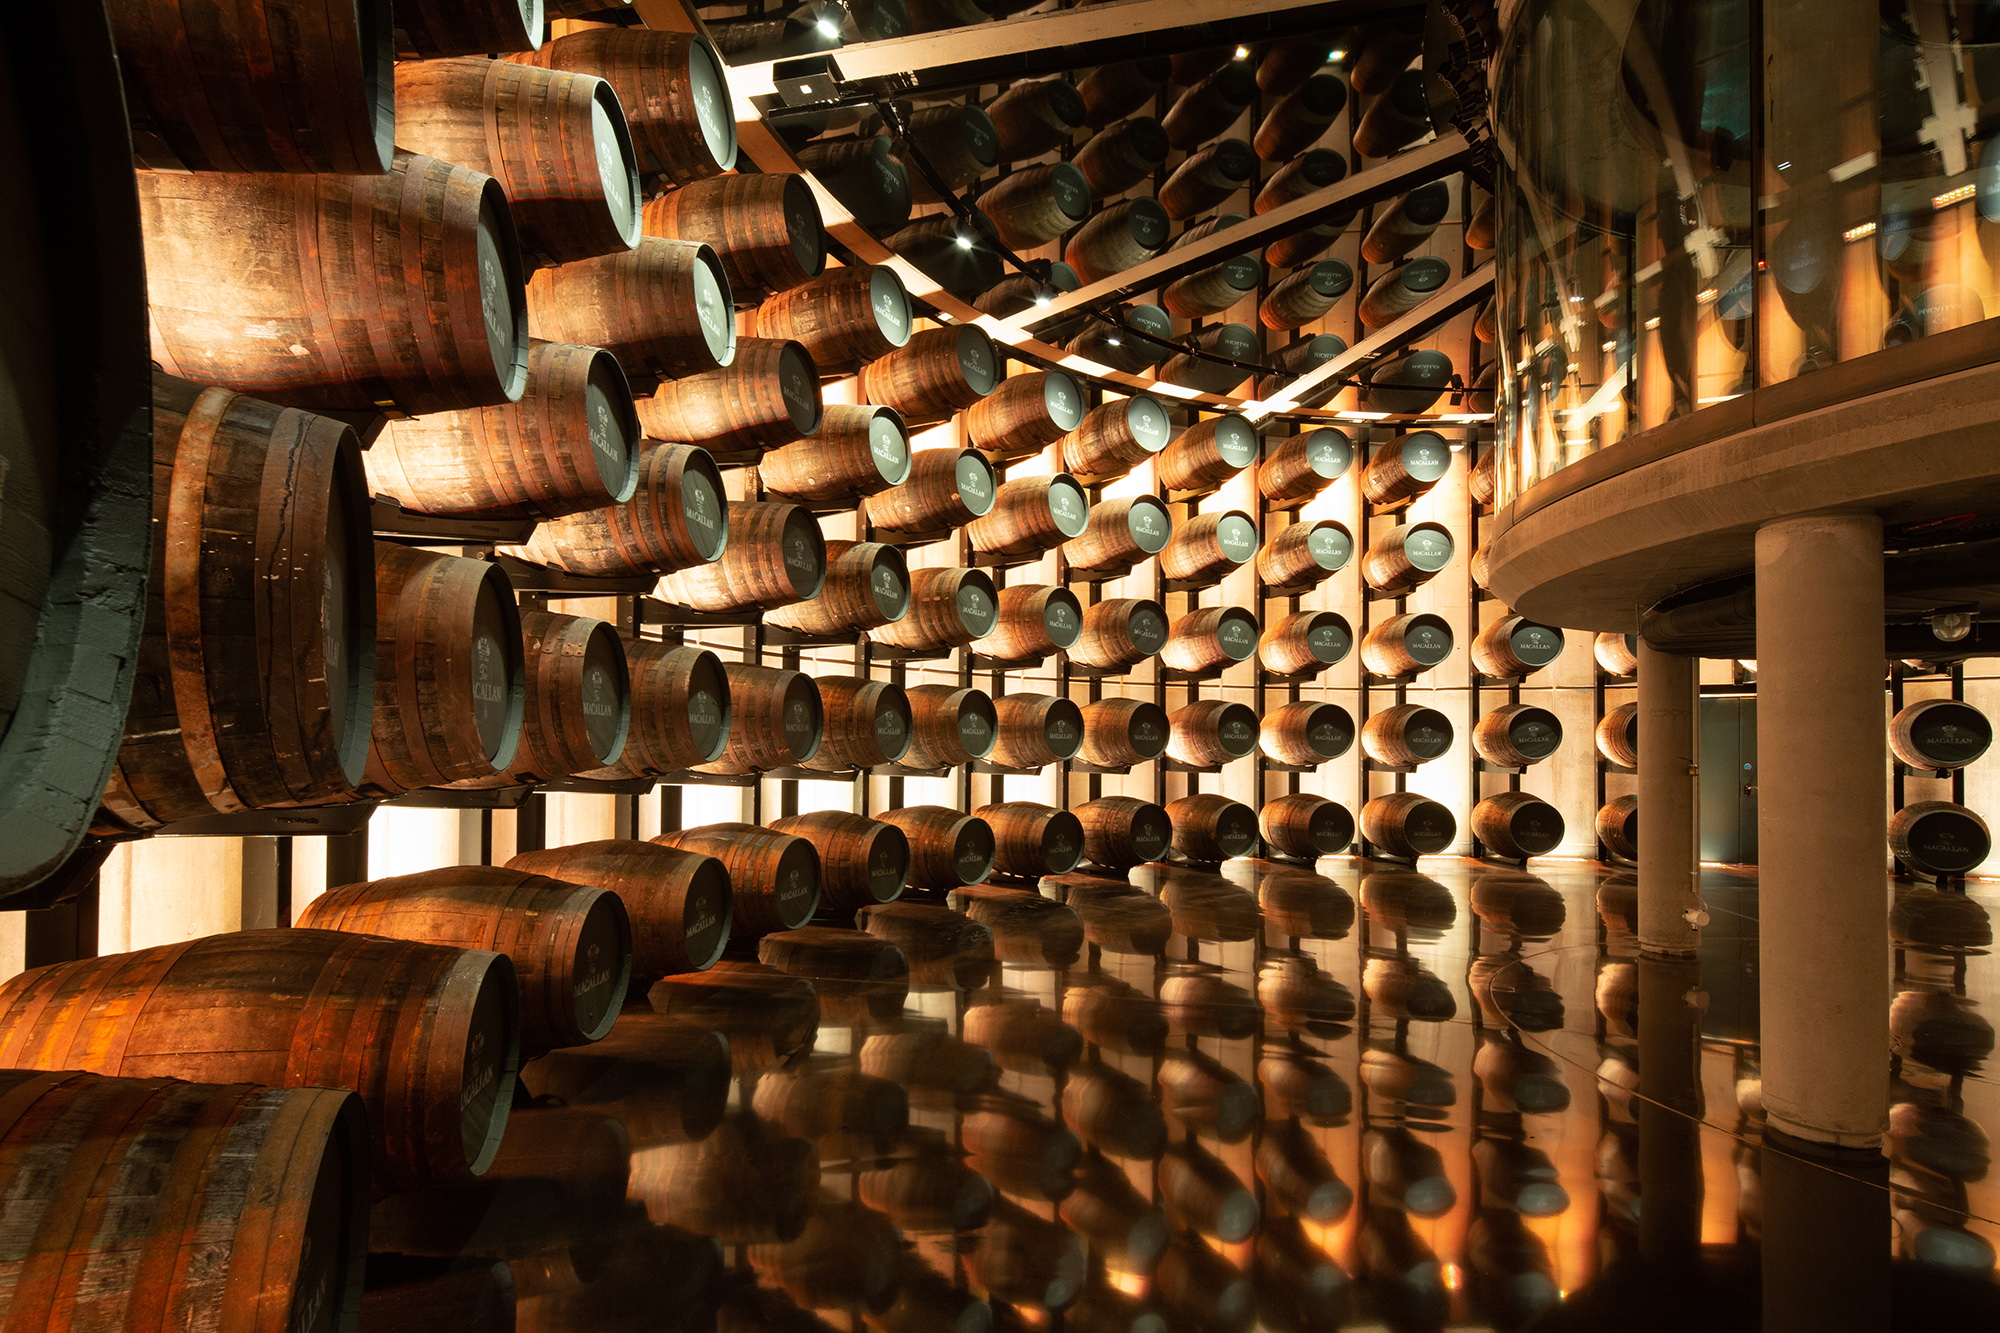 Whisky cask room